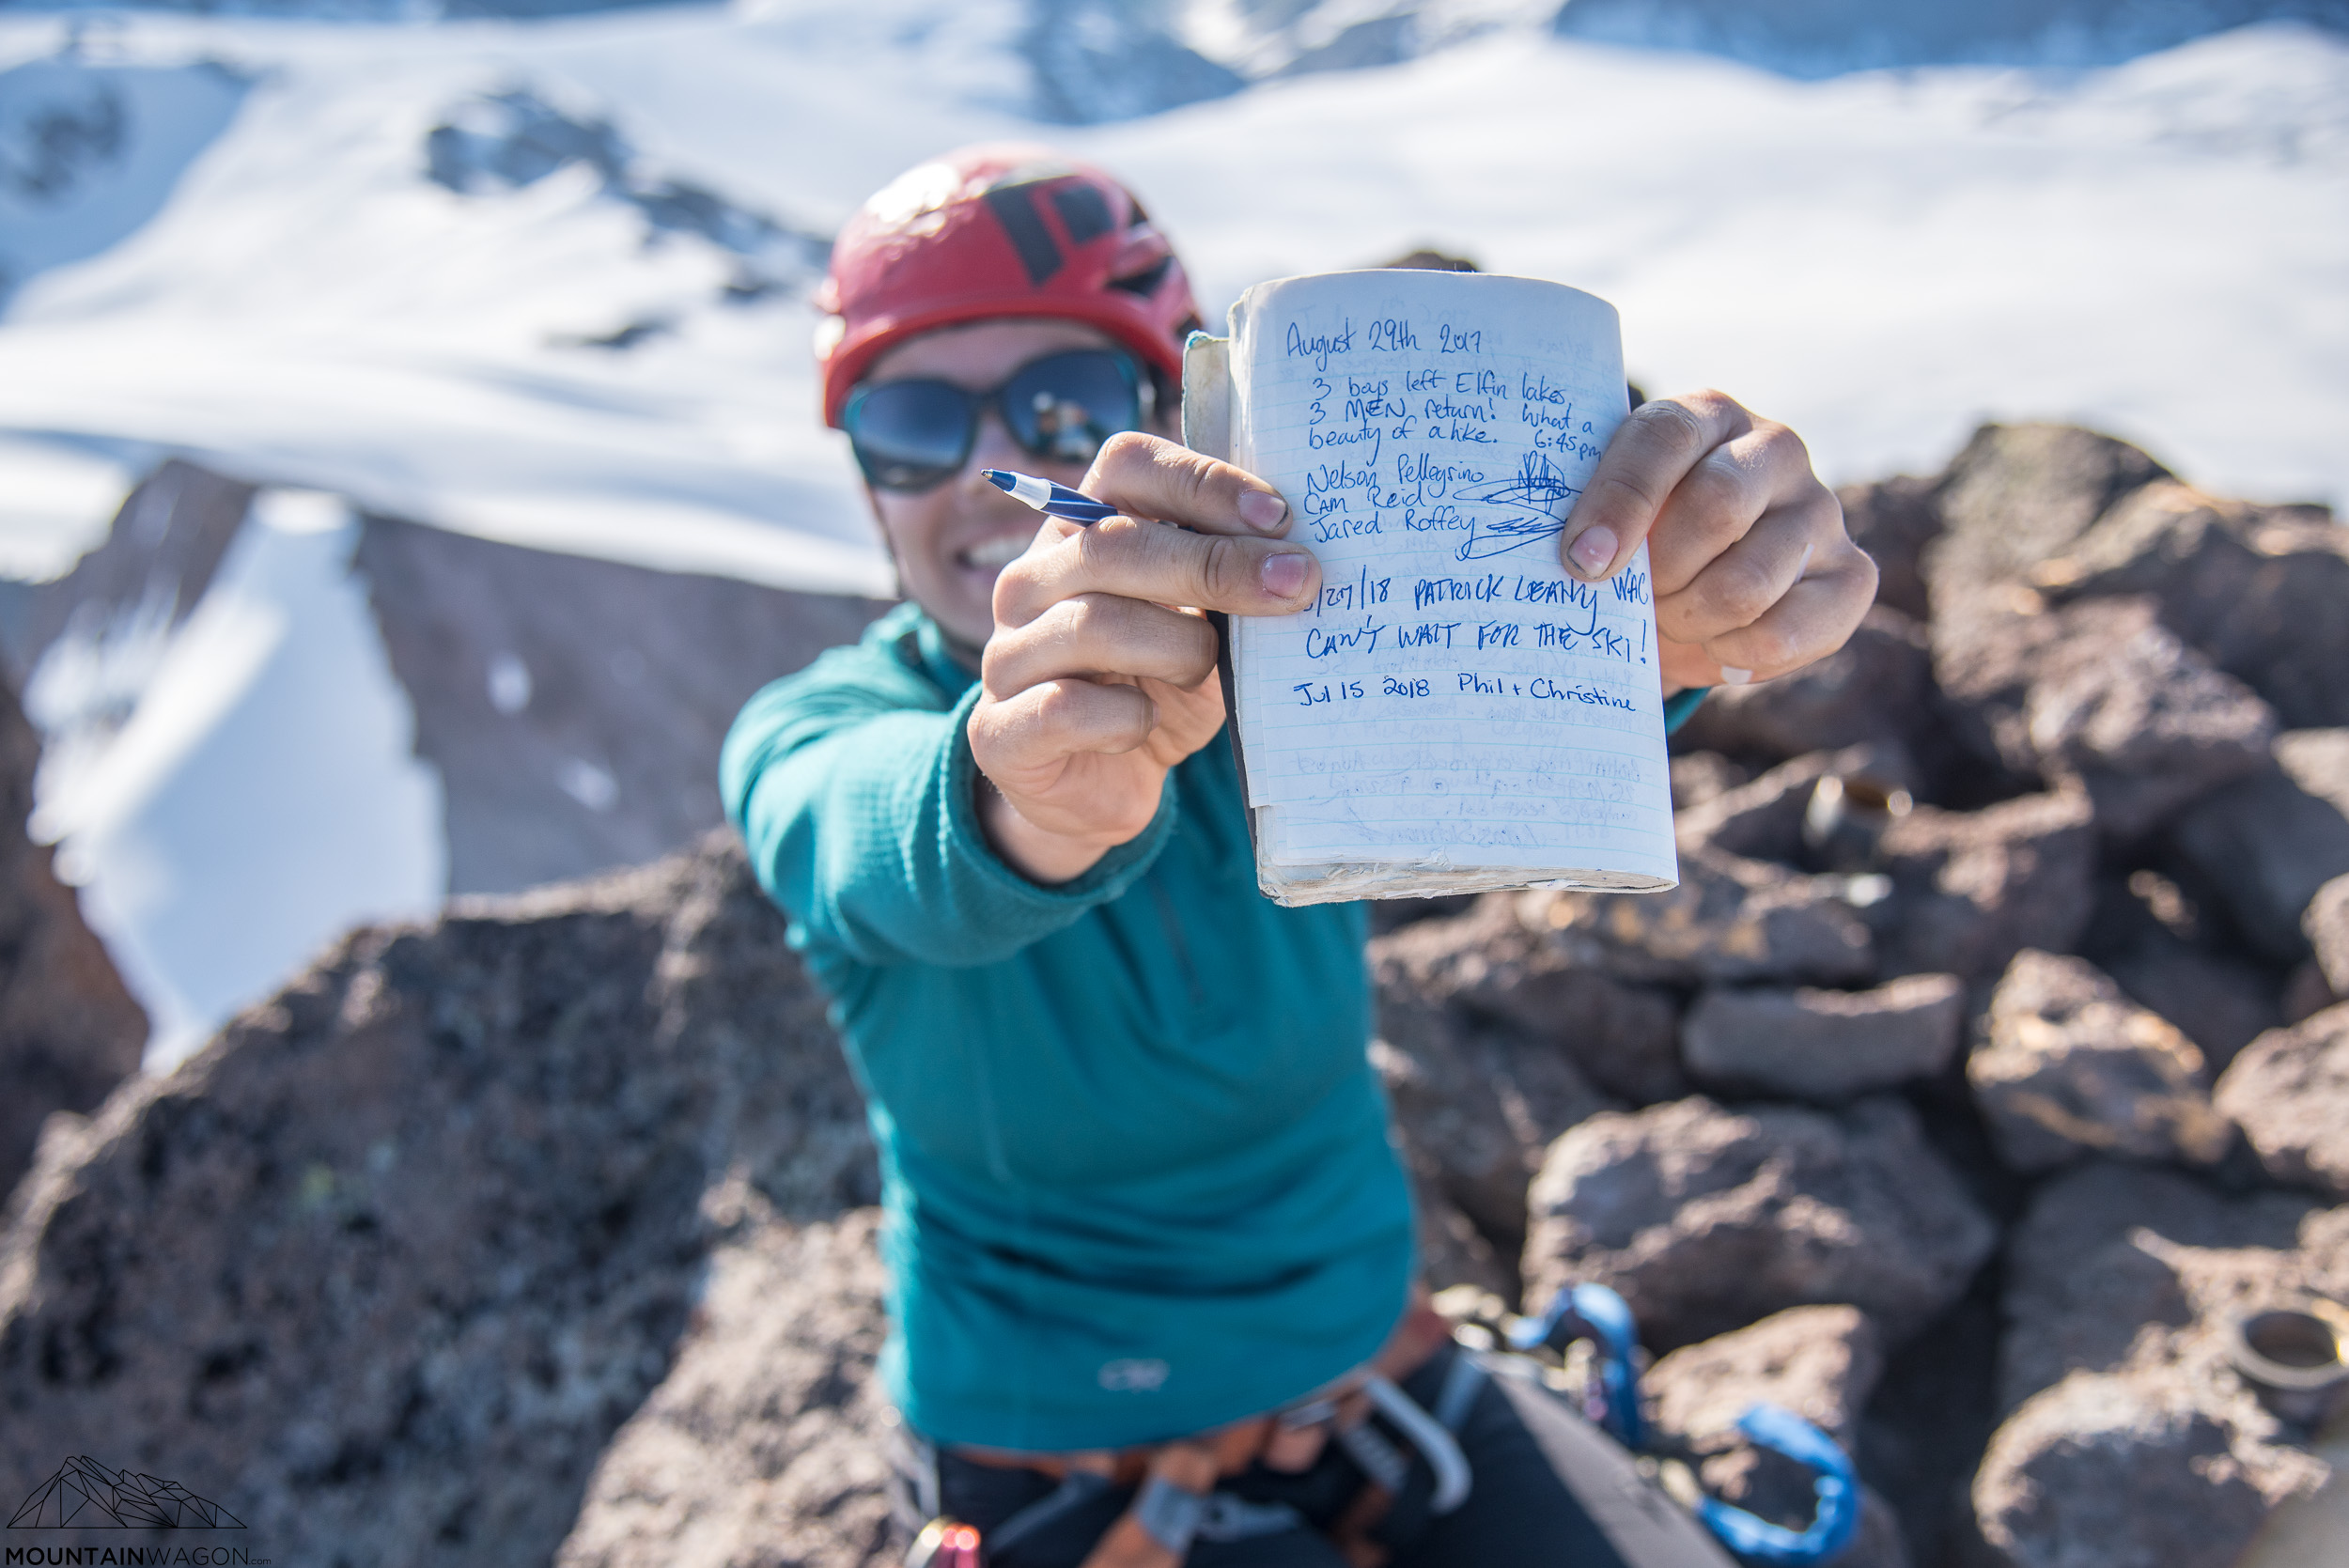 If you don't sign the summit register, it doesn't count!